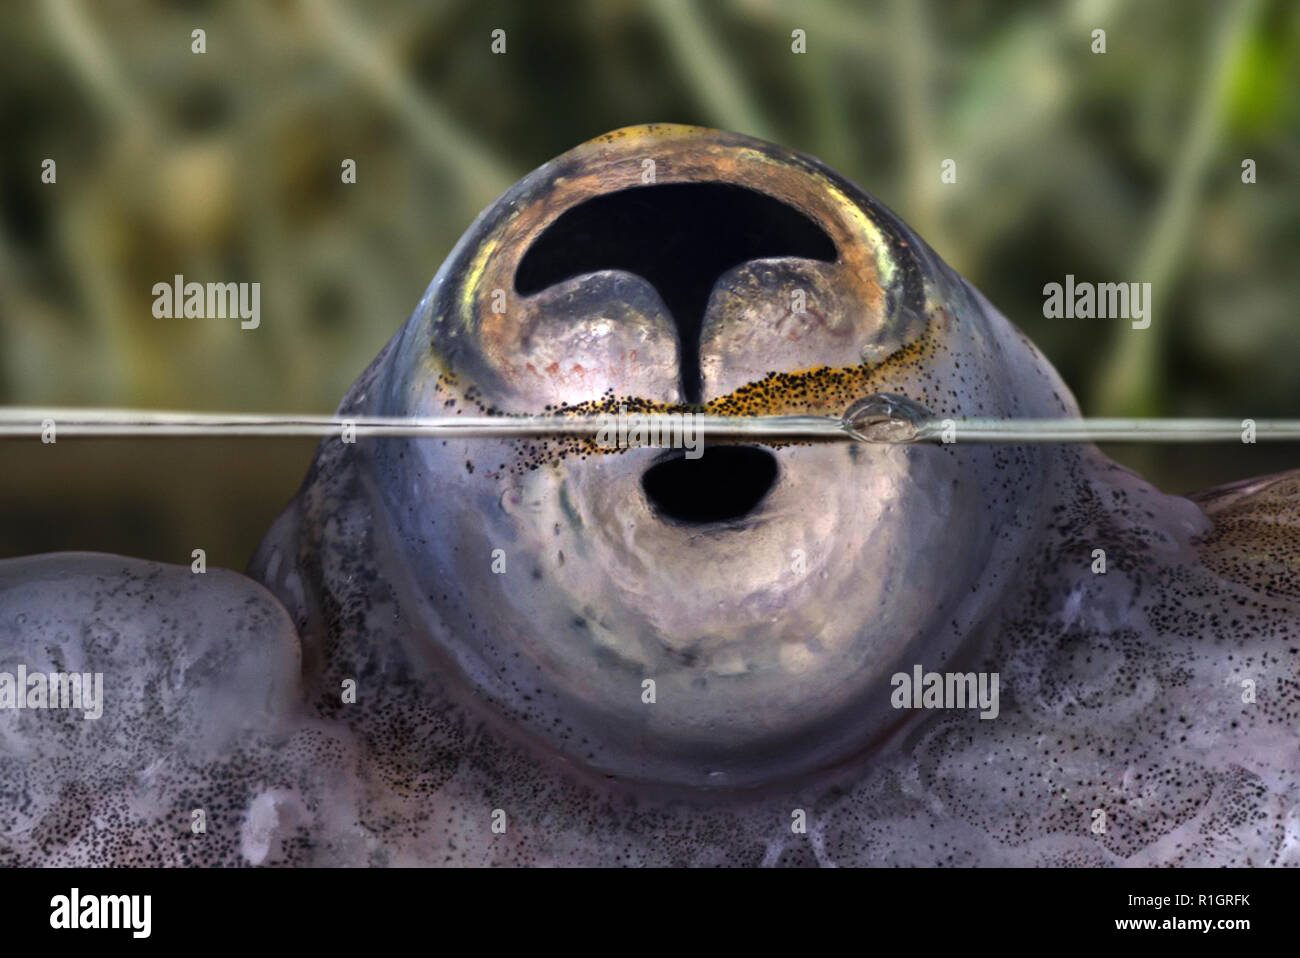 Four-eyed fish, Anableps anableps, eye detail. Four-eyed fish have only two eyes, but the eyes are specially adapted for their surface-dwelling - Stock Image